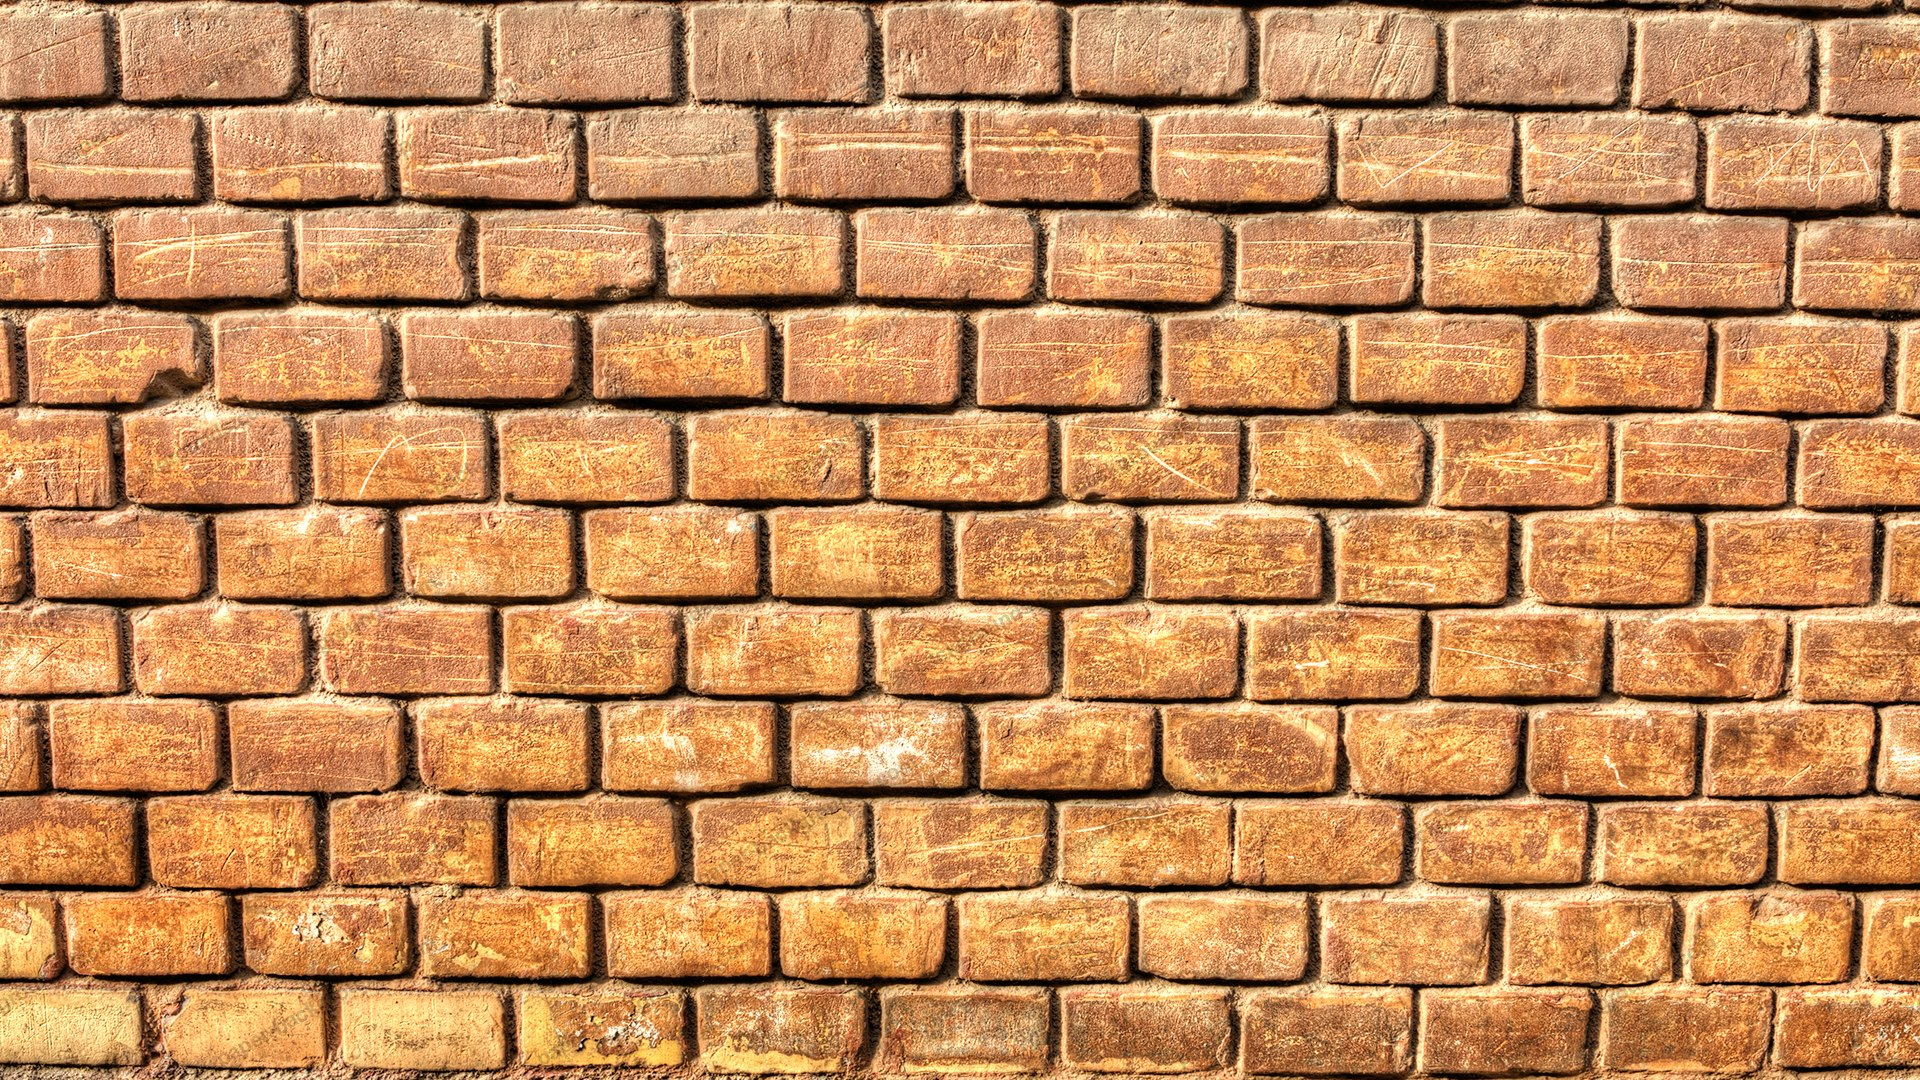 Old Grungy Brick Wall HD 1920 x 1080p